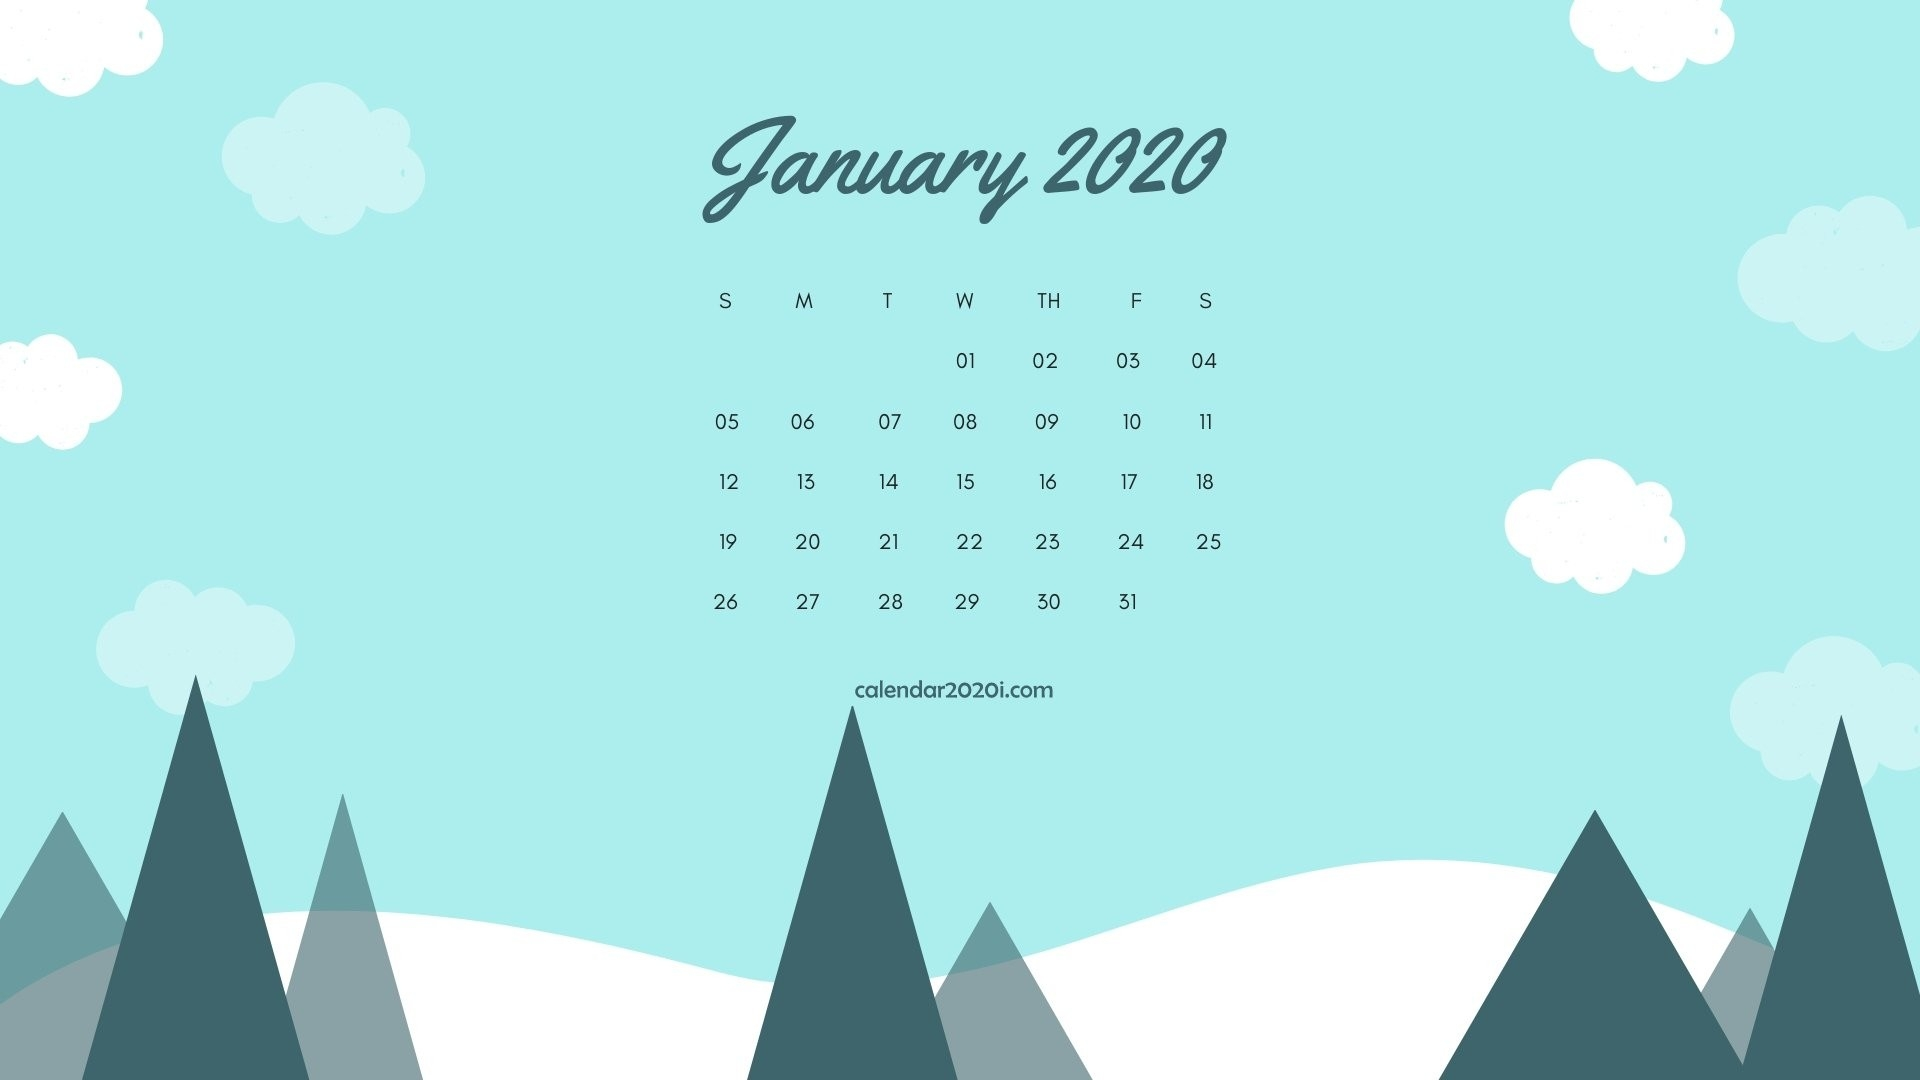 2020 Calendar Monthly Hd Wallpapers | Calendar 2020-January 2020 Calendar Wallpaper